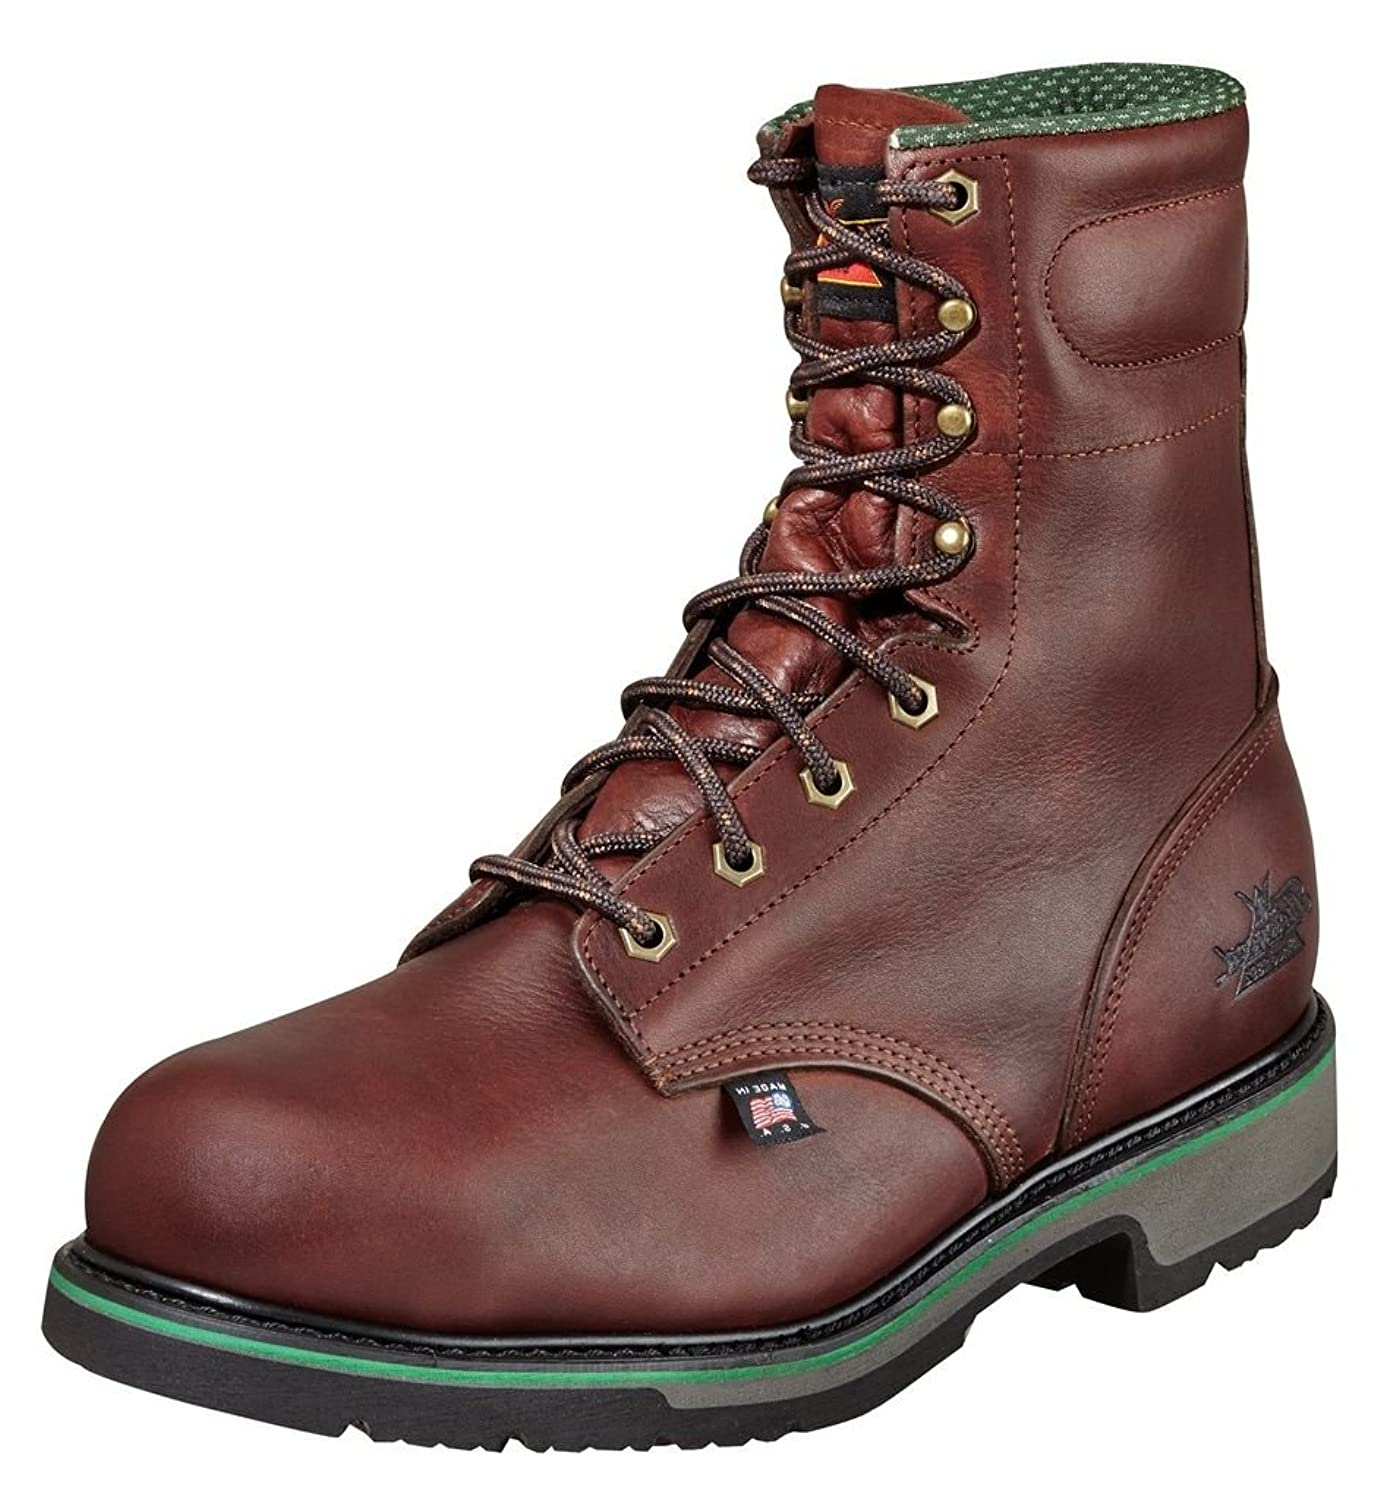 804-4721 Thorogood Men's SD TYPE-1 Series Safety Boots - Brown